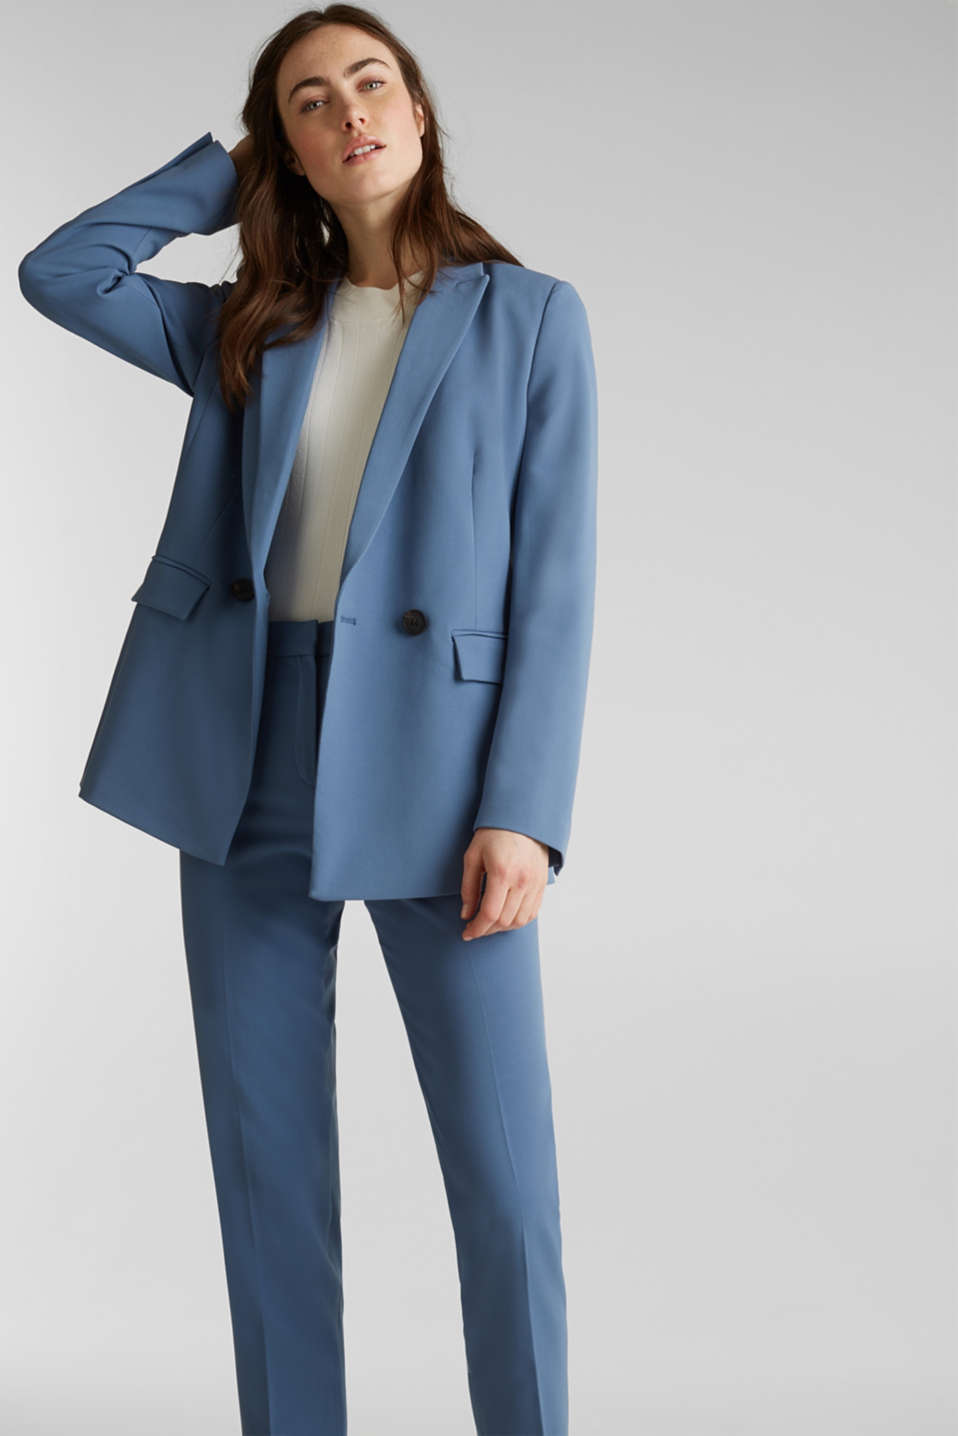 COLORED TWILL Mix + Match stretch blazer, GREY BLUE, detail image number 6